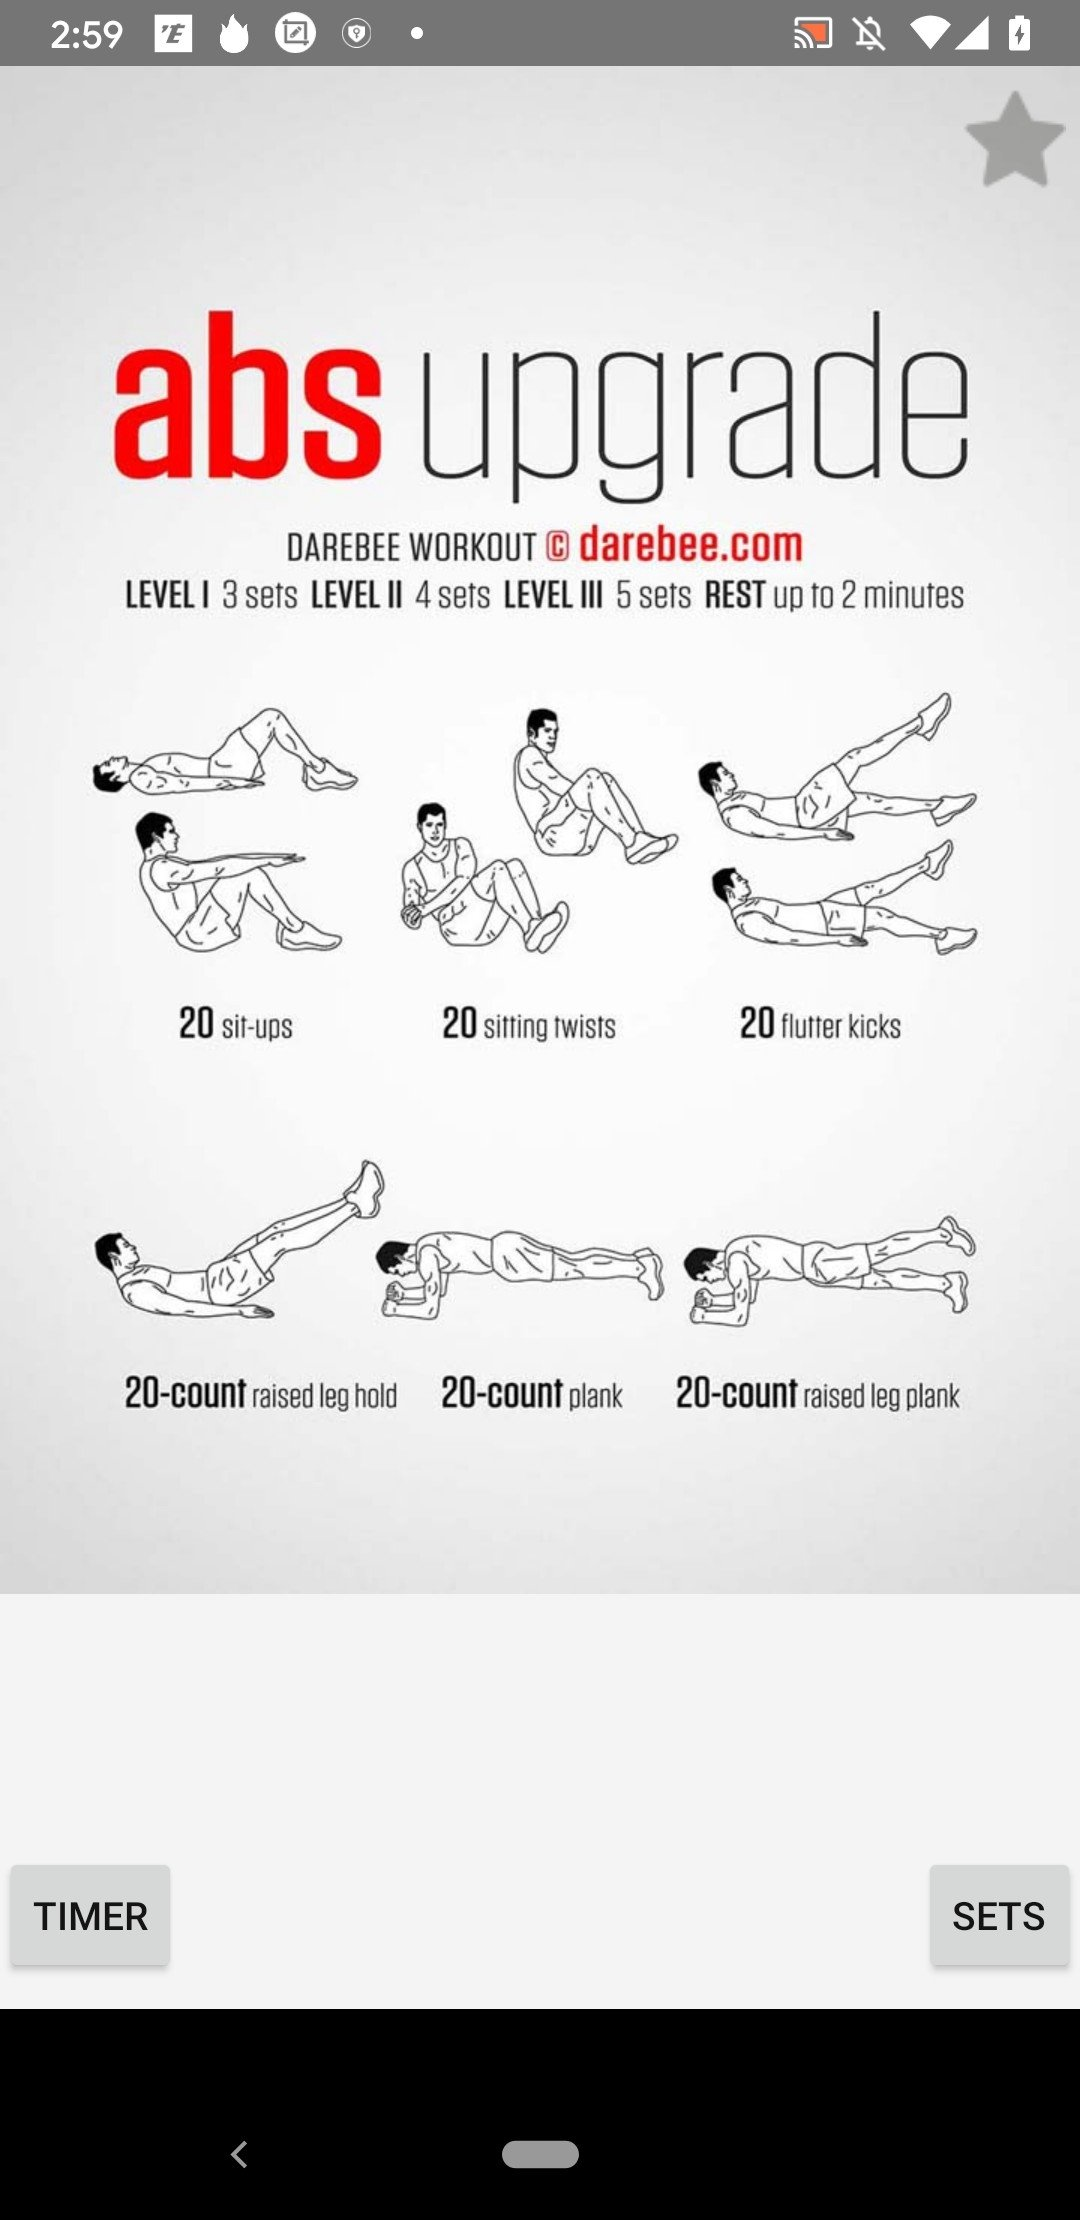 Pocket Workouts Android image 3